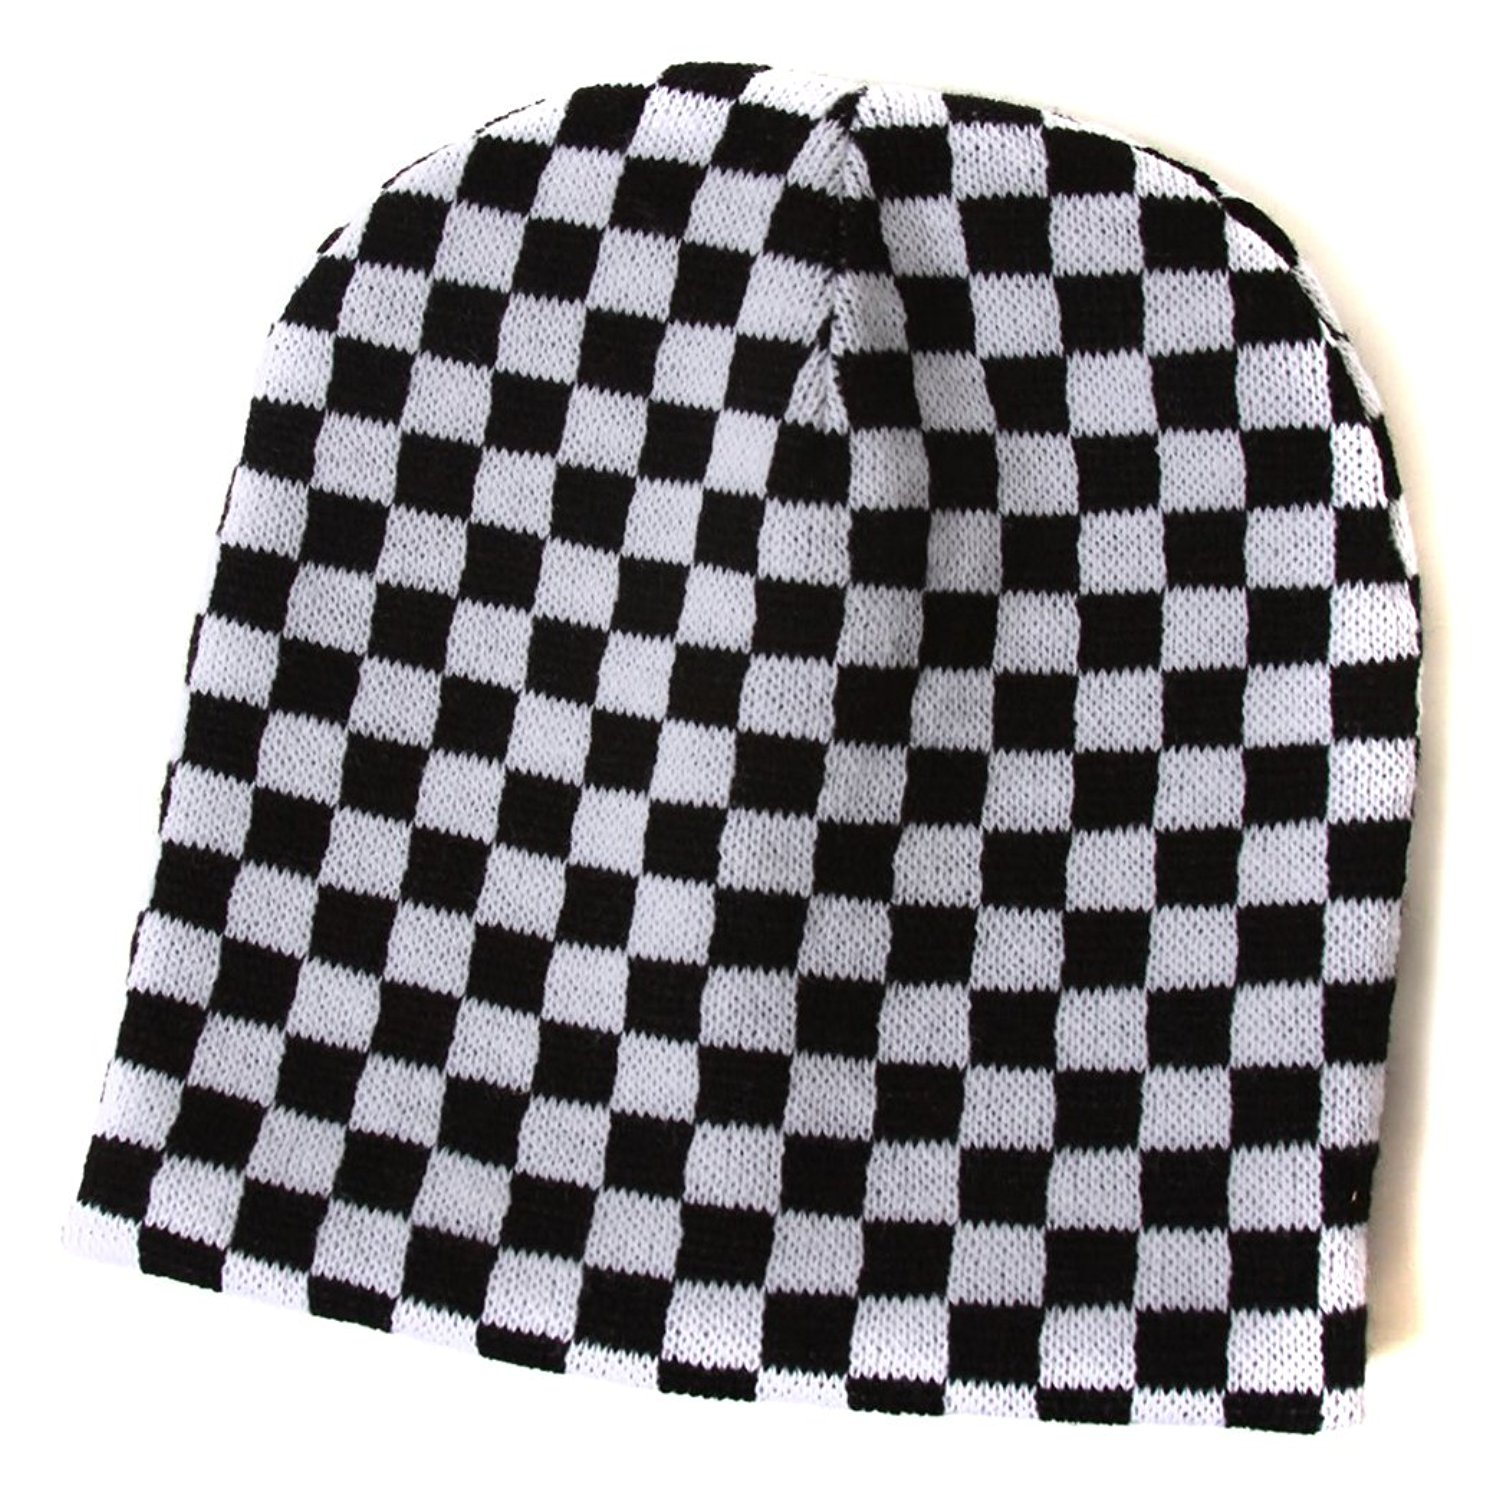 3f7929fe78b Get Quotations · Cuffless Checkered Beanie - Black and White